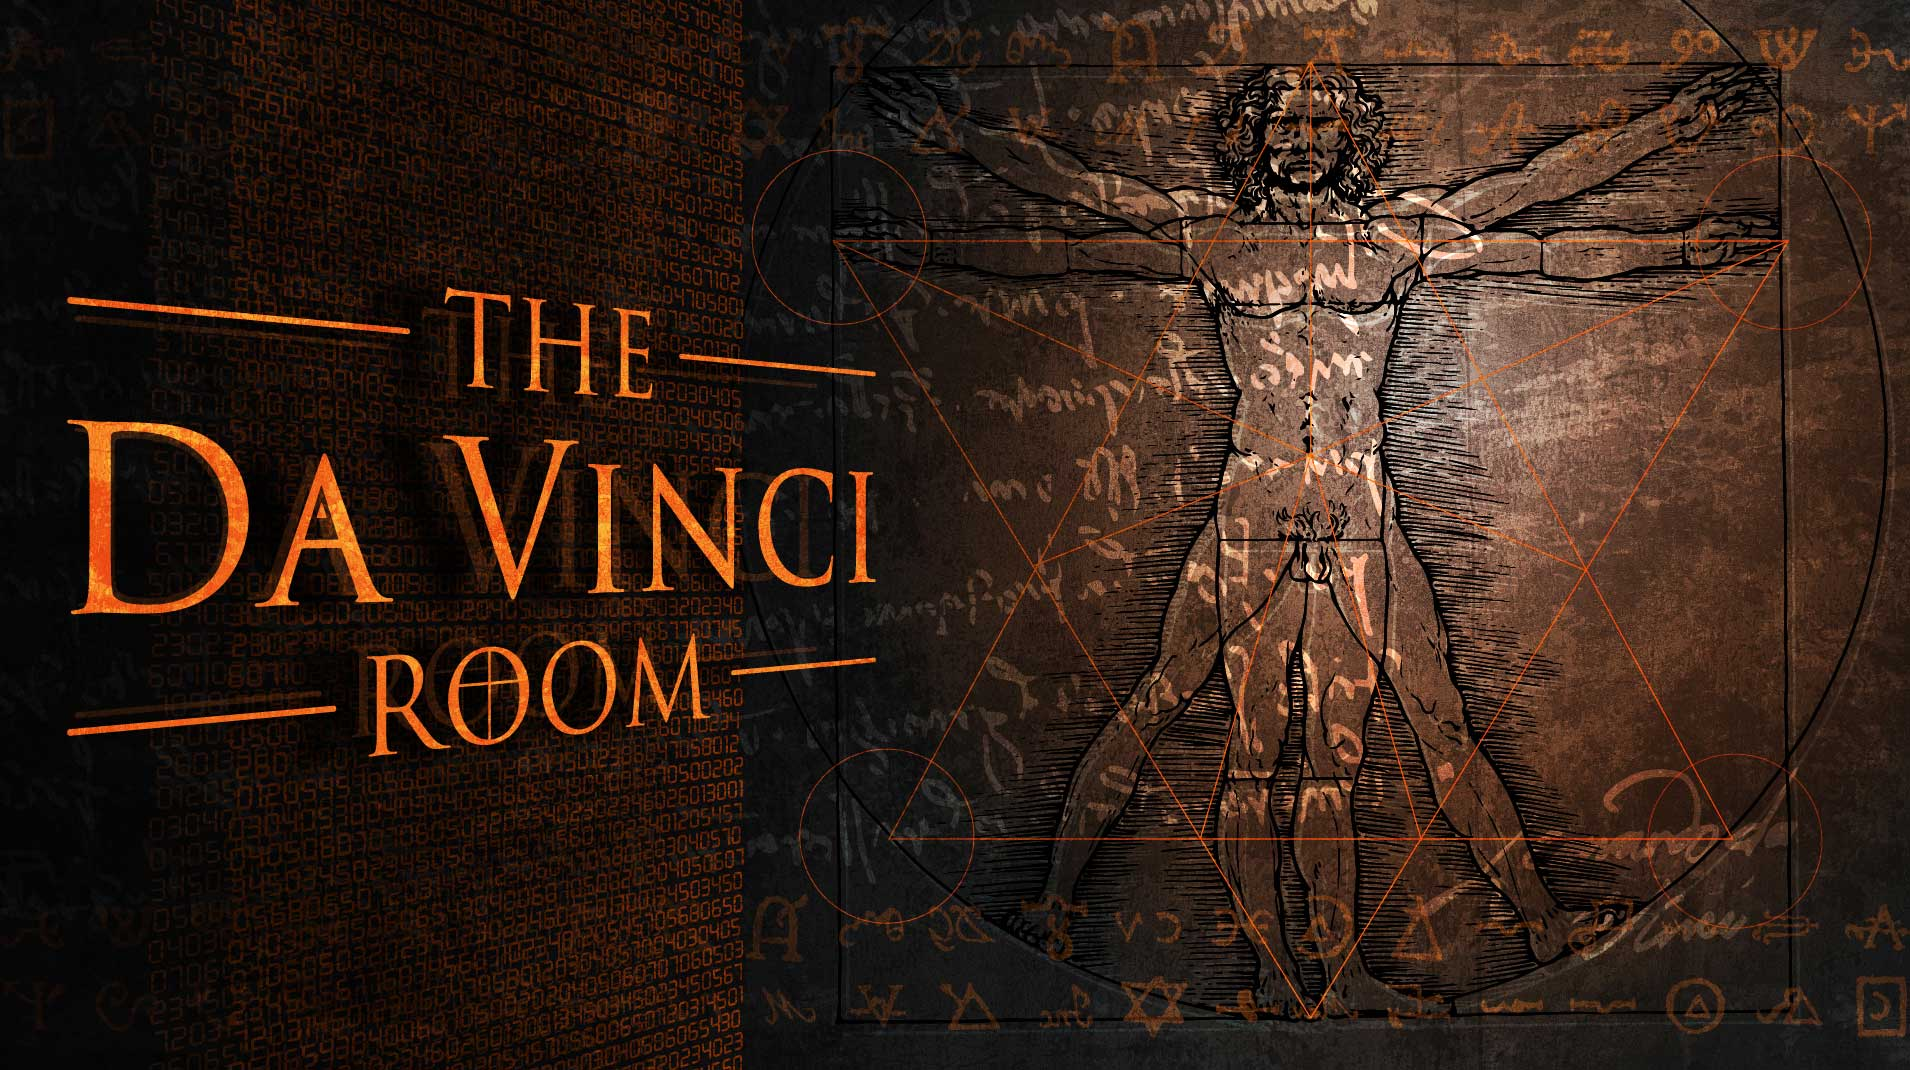 the da vinci room - SHEPHERD'S BUSH - WEST LONDONOur Da Vinci Room will see you take on the role of thief, but for the greater good. Dr John Albright has studied the workings of Da Vinci in great detail. He has amassed a considerable collection over the years, including what many believe to be the Holy Grail.Having gained his trust by helping him